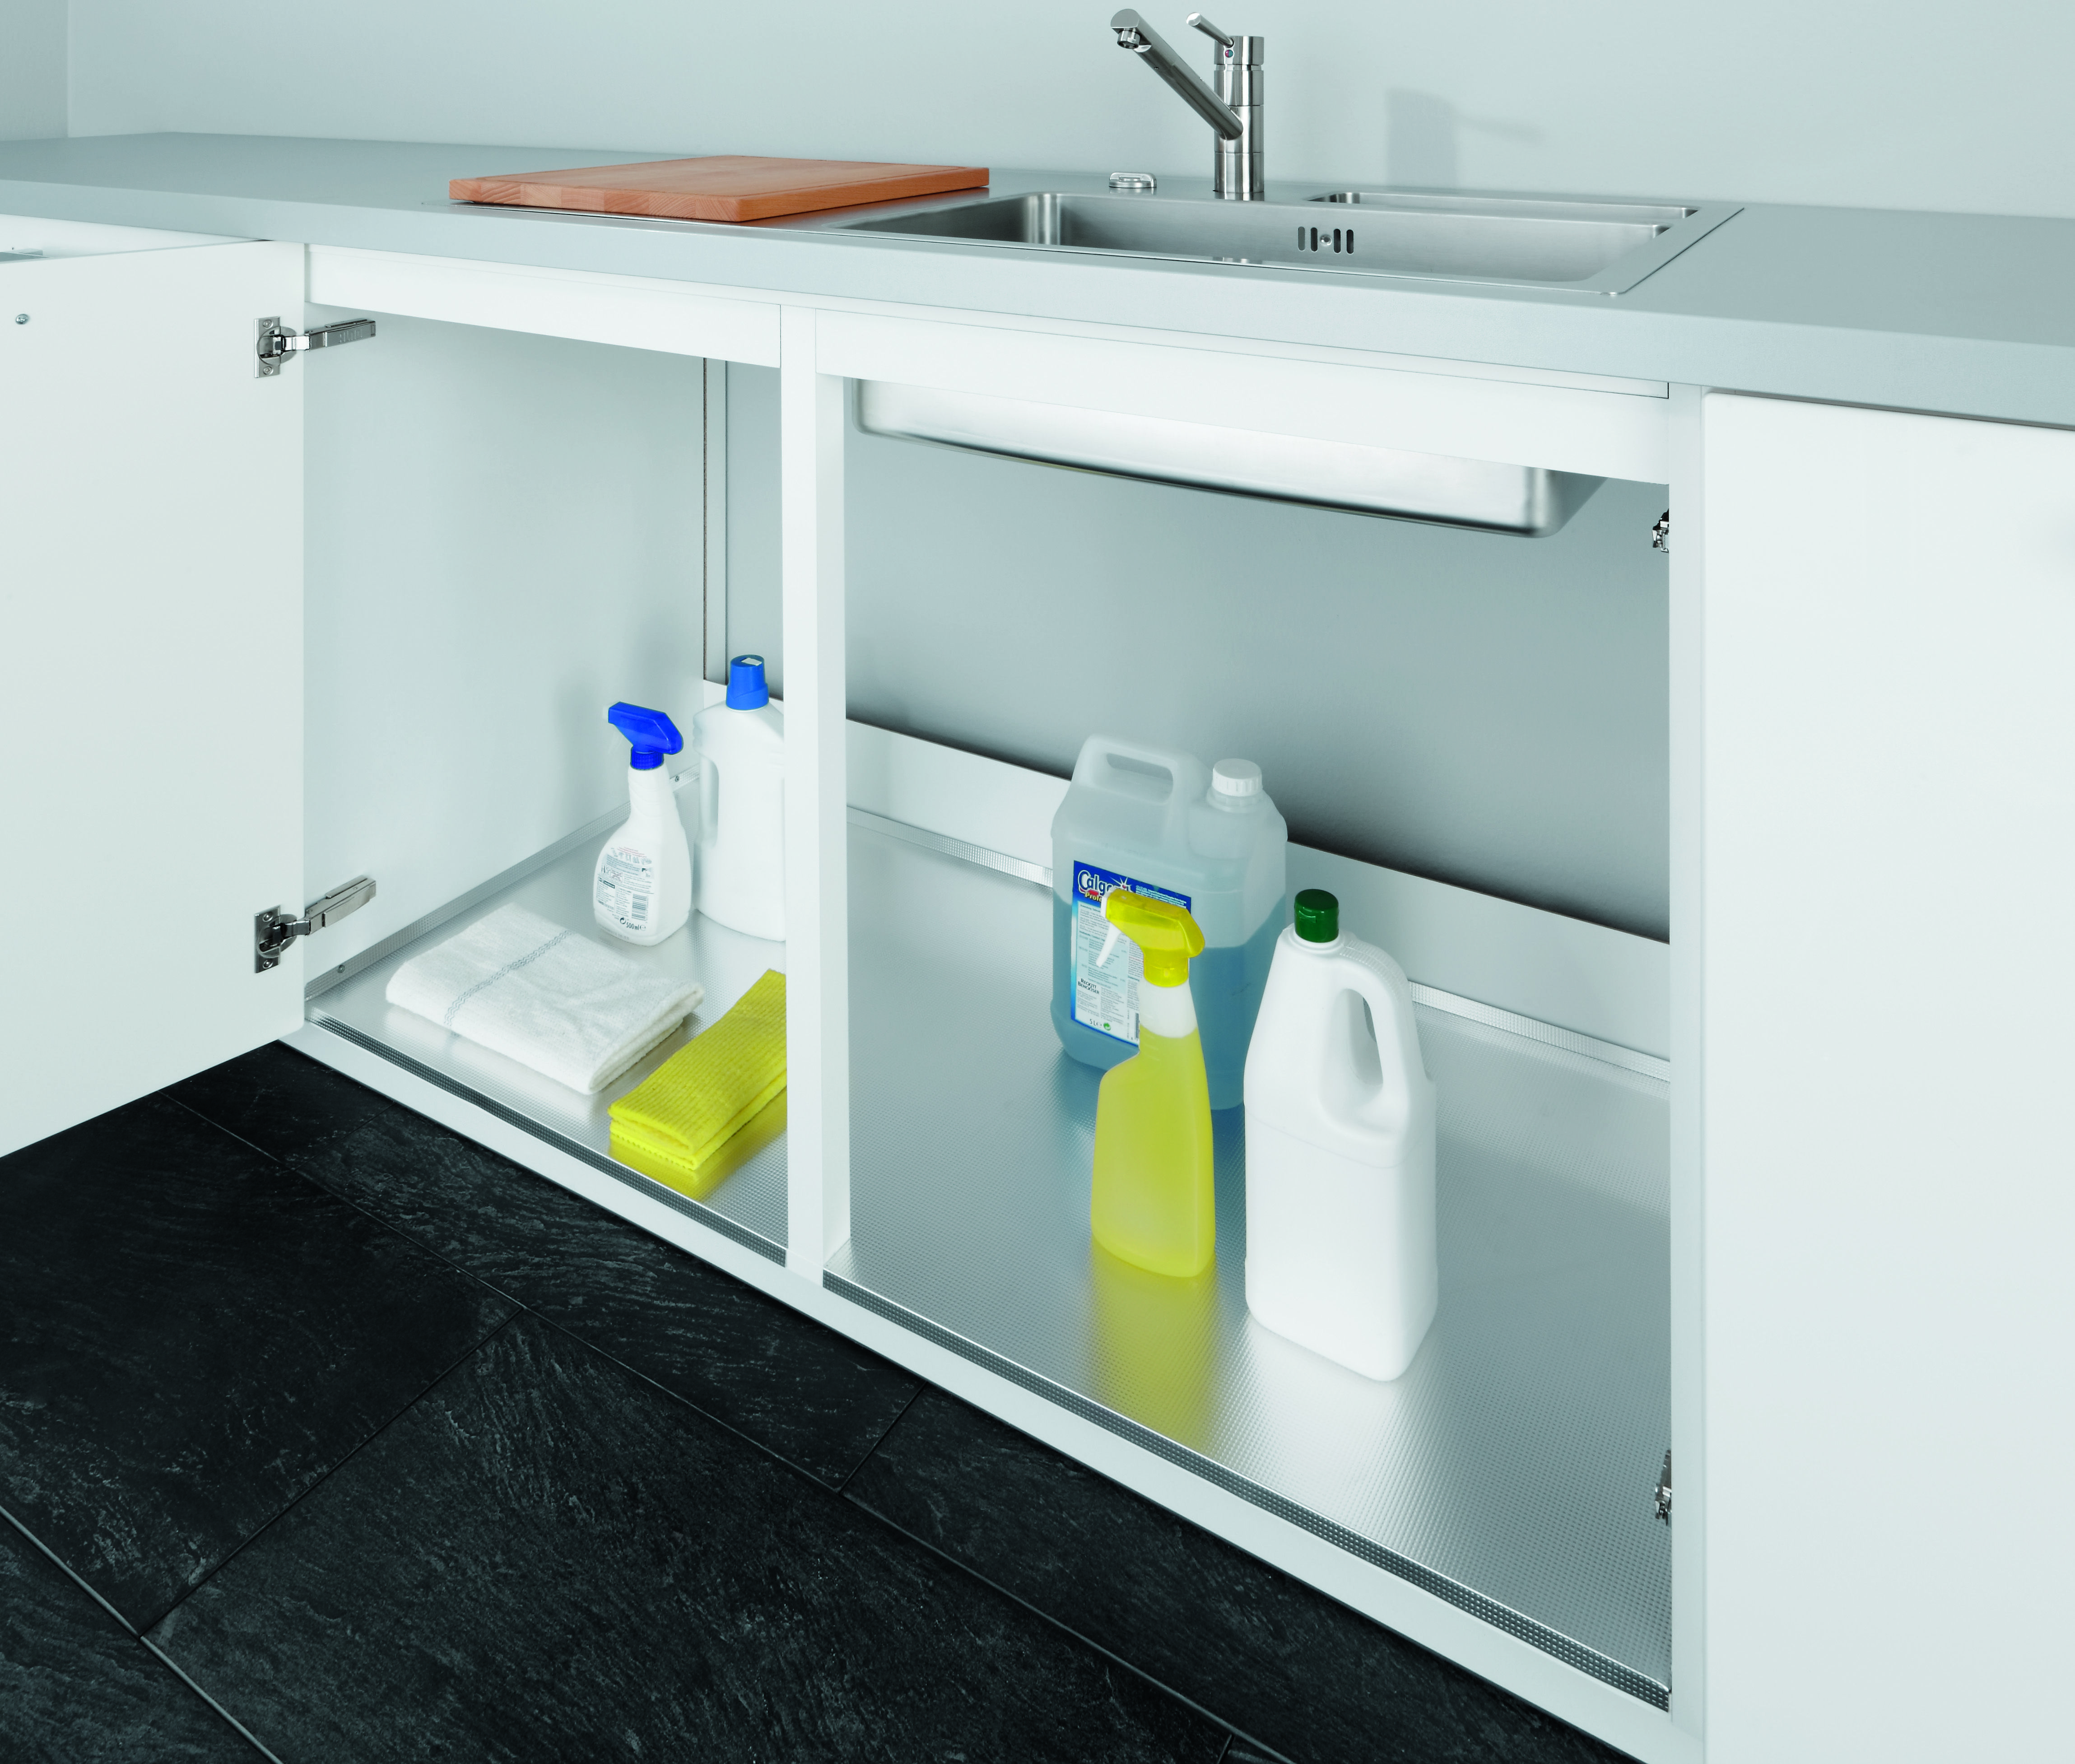 Alno Offer This Clever Yet Simple Aluminium Sink Base Liner To Catch Any Drips O Kitchen Cabinet Storage Solutions Ikea Kitchen Cabinets Corner Kitchen Cabinet